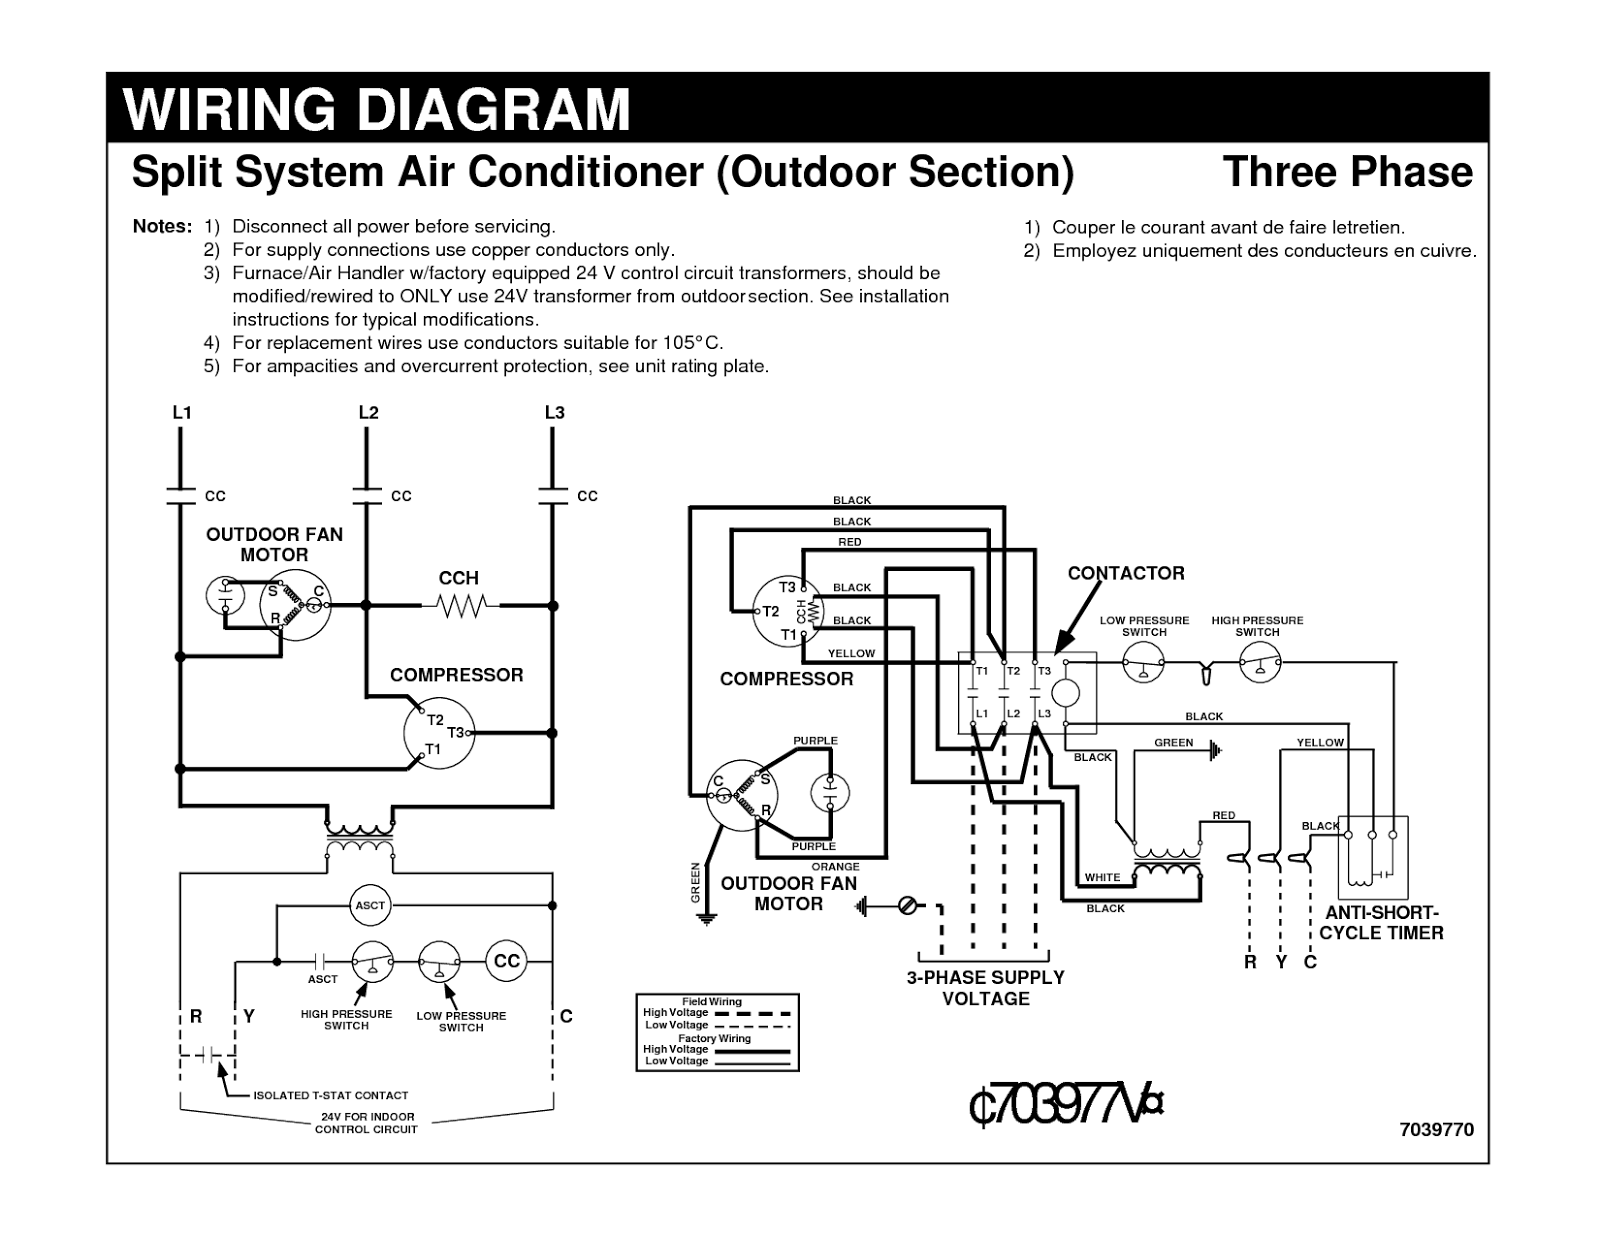 How To Read Electrical Wiring Diagrams on Vintage Air Conditioning Wiring Diagram